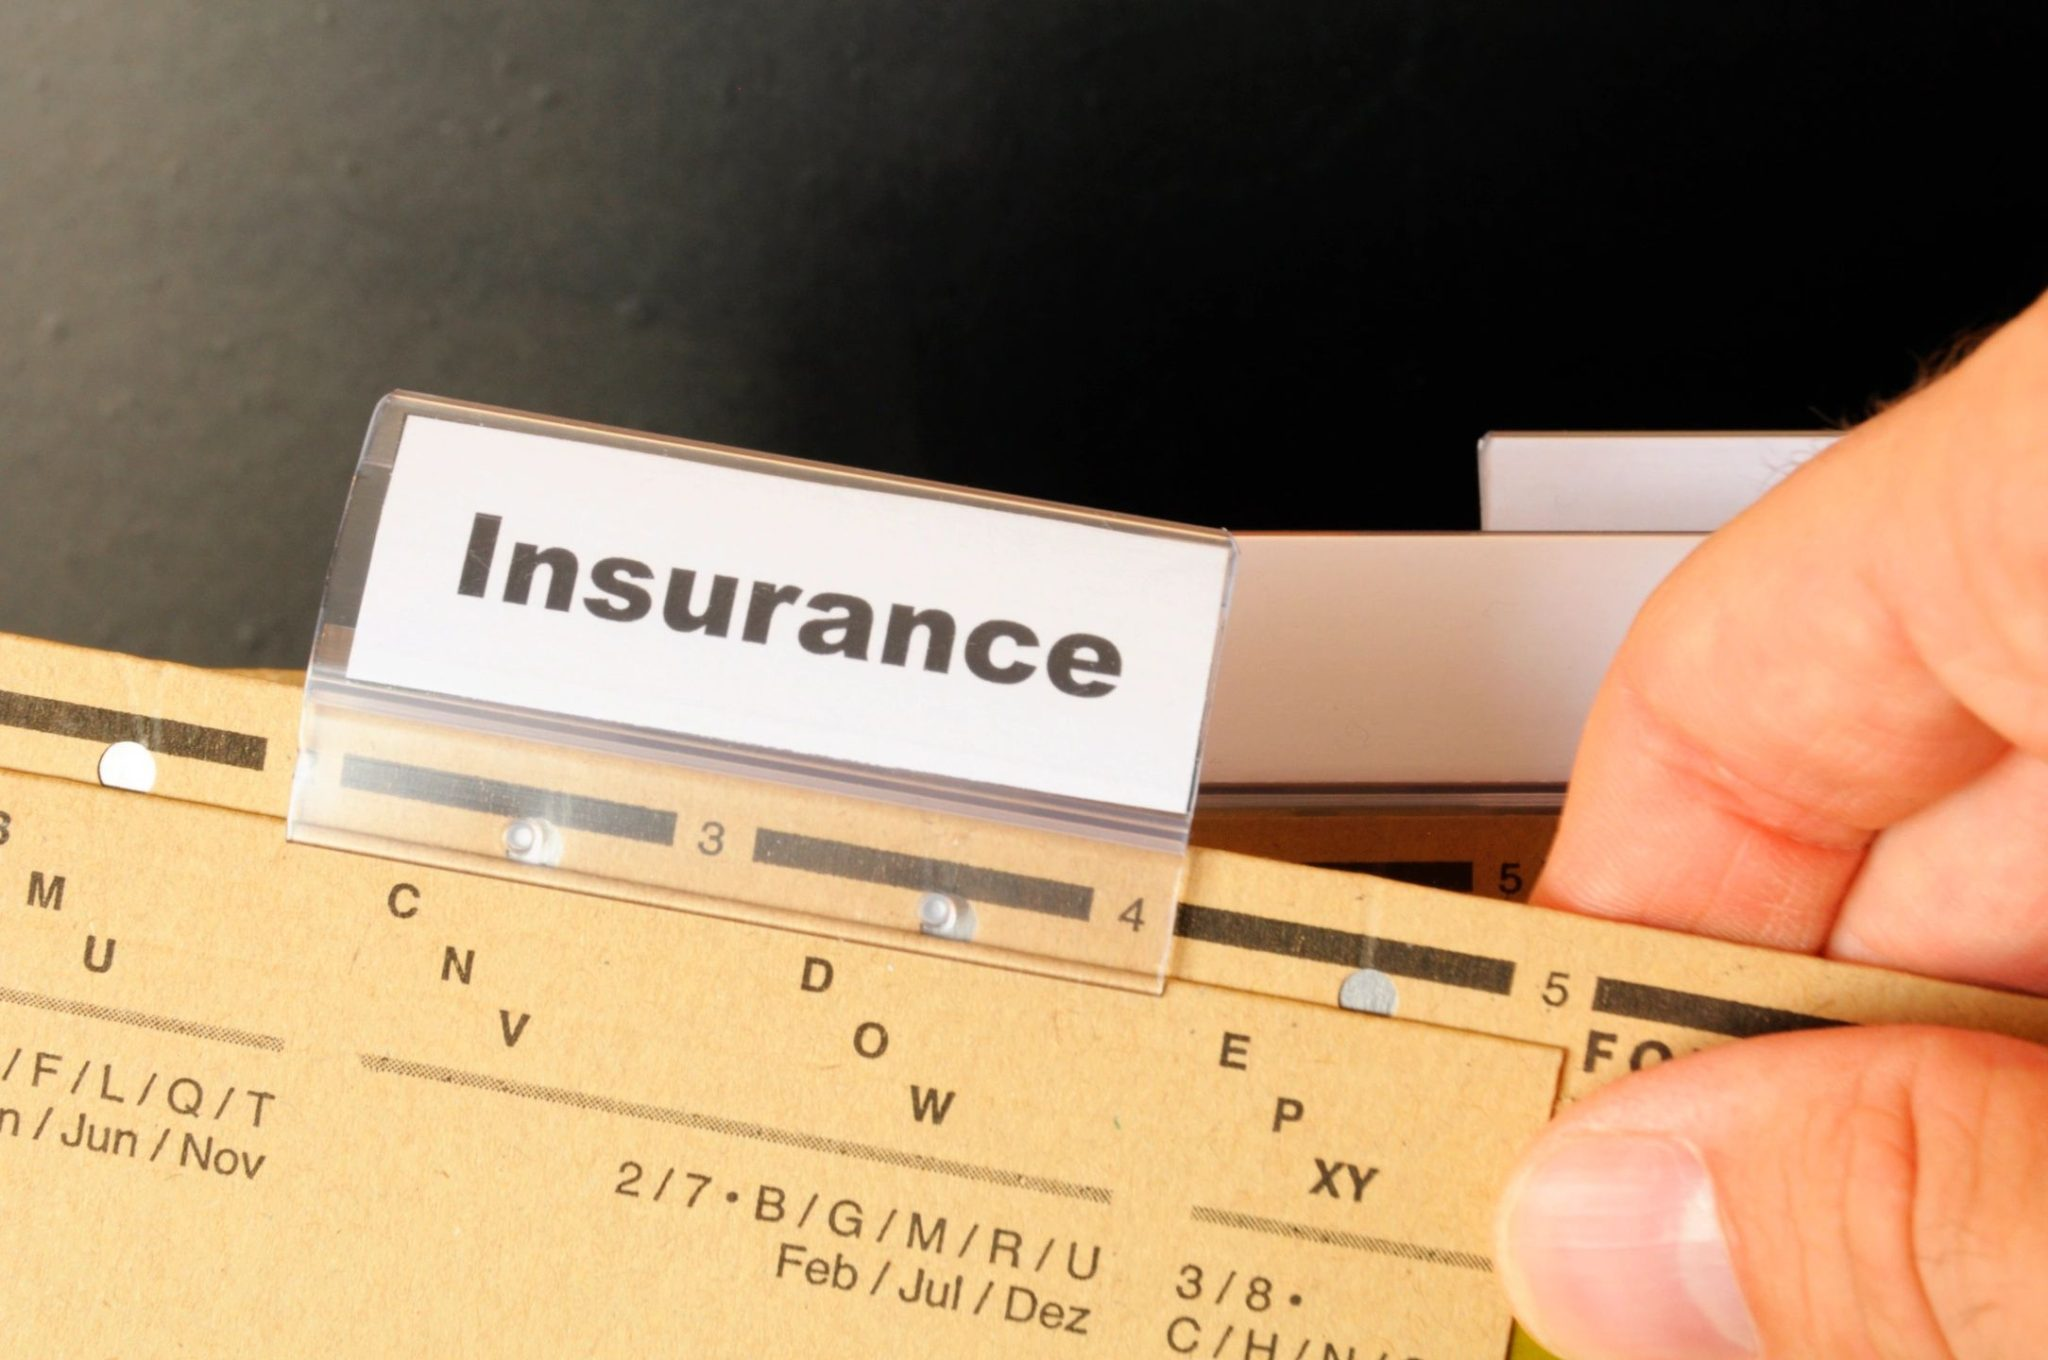 INSURANCE REQUIREMENTS IN CONTRACTS – RESTORATION CONTRACTORS